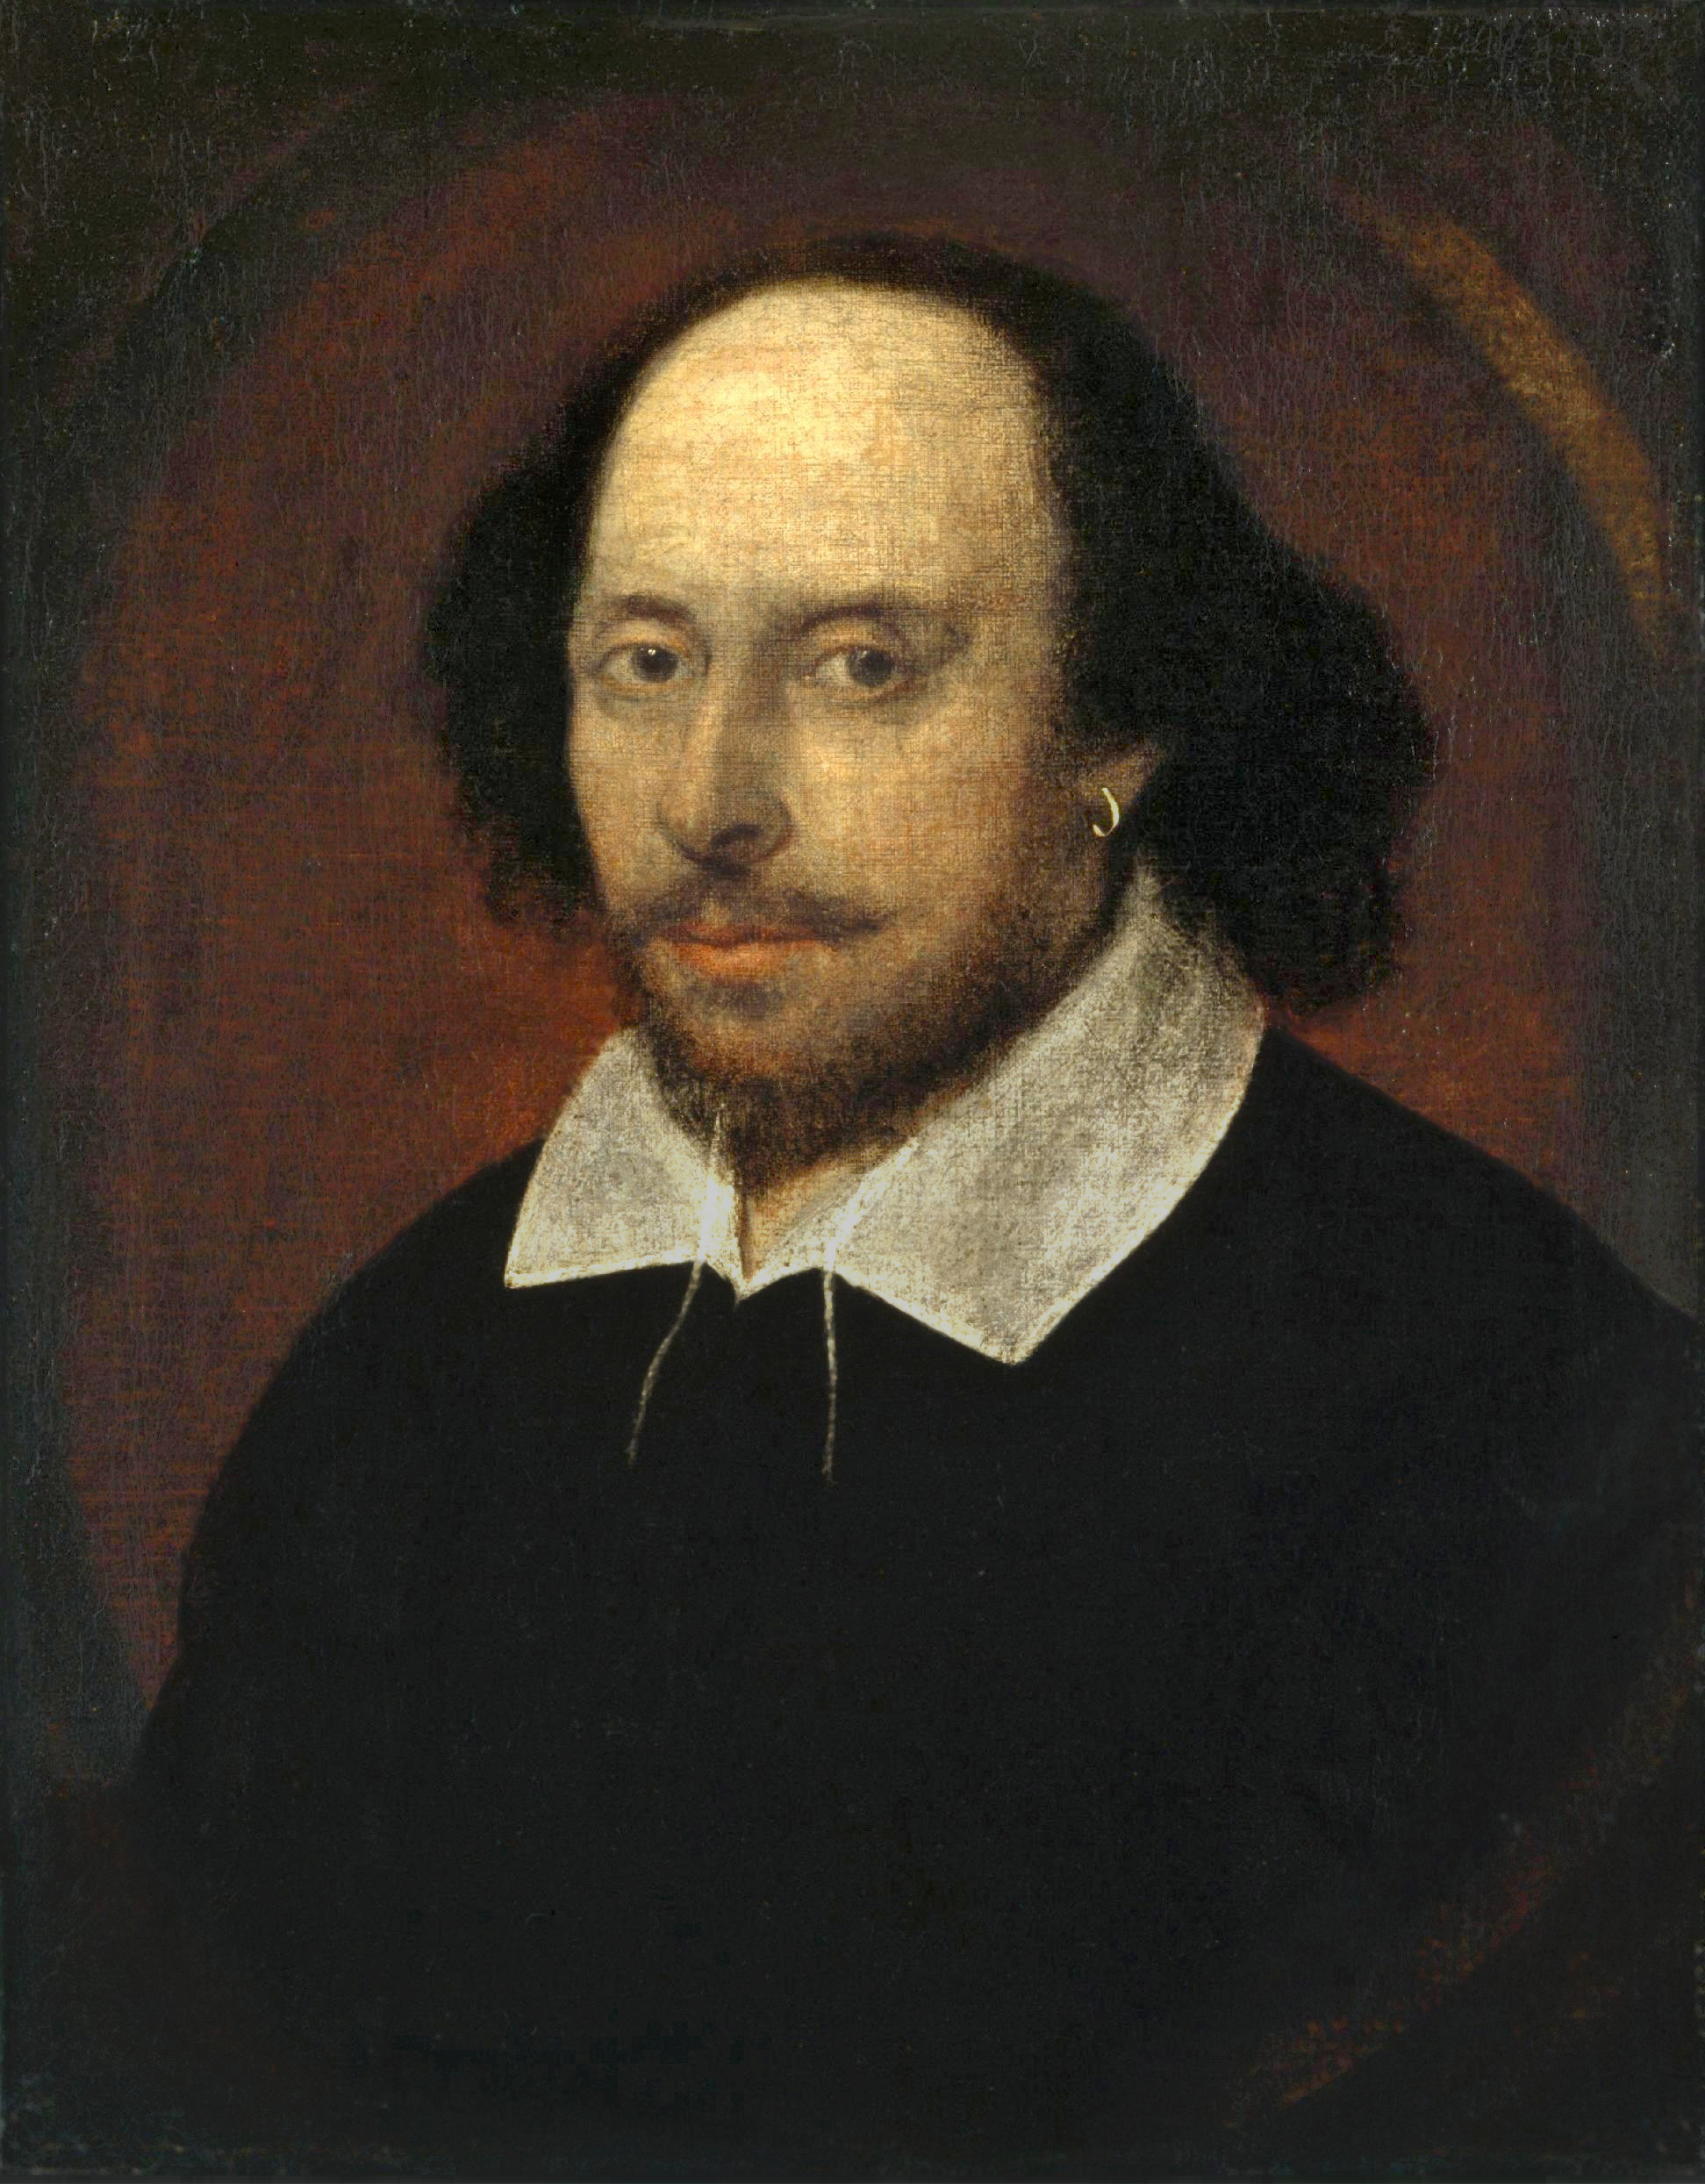 "The image ""http://upload.wikimedia.org/wikipedia/commons/a/a2/Shakespeare.jpg"" cannot be displayed, because it contains errors."